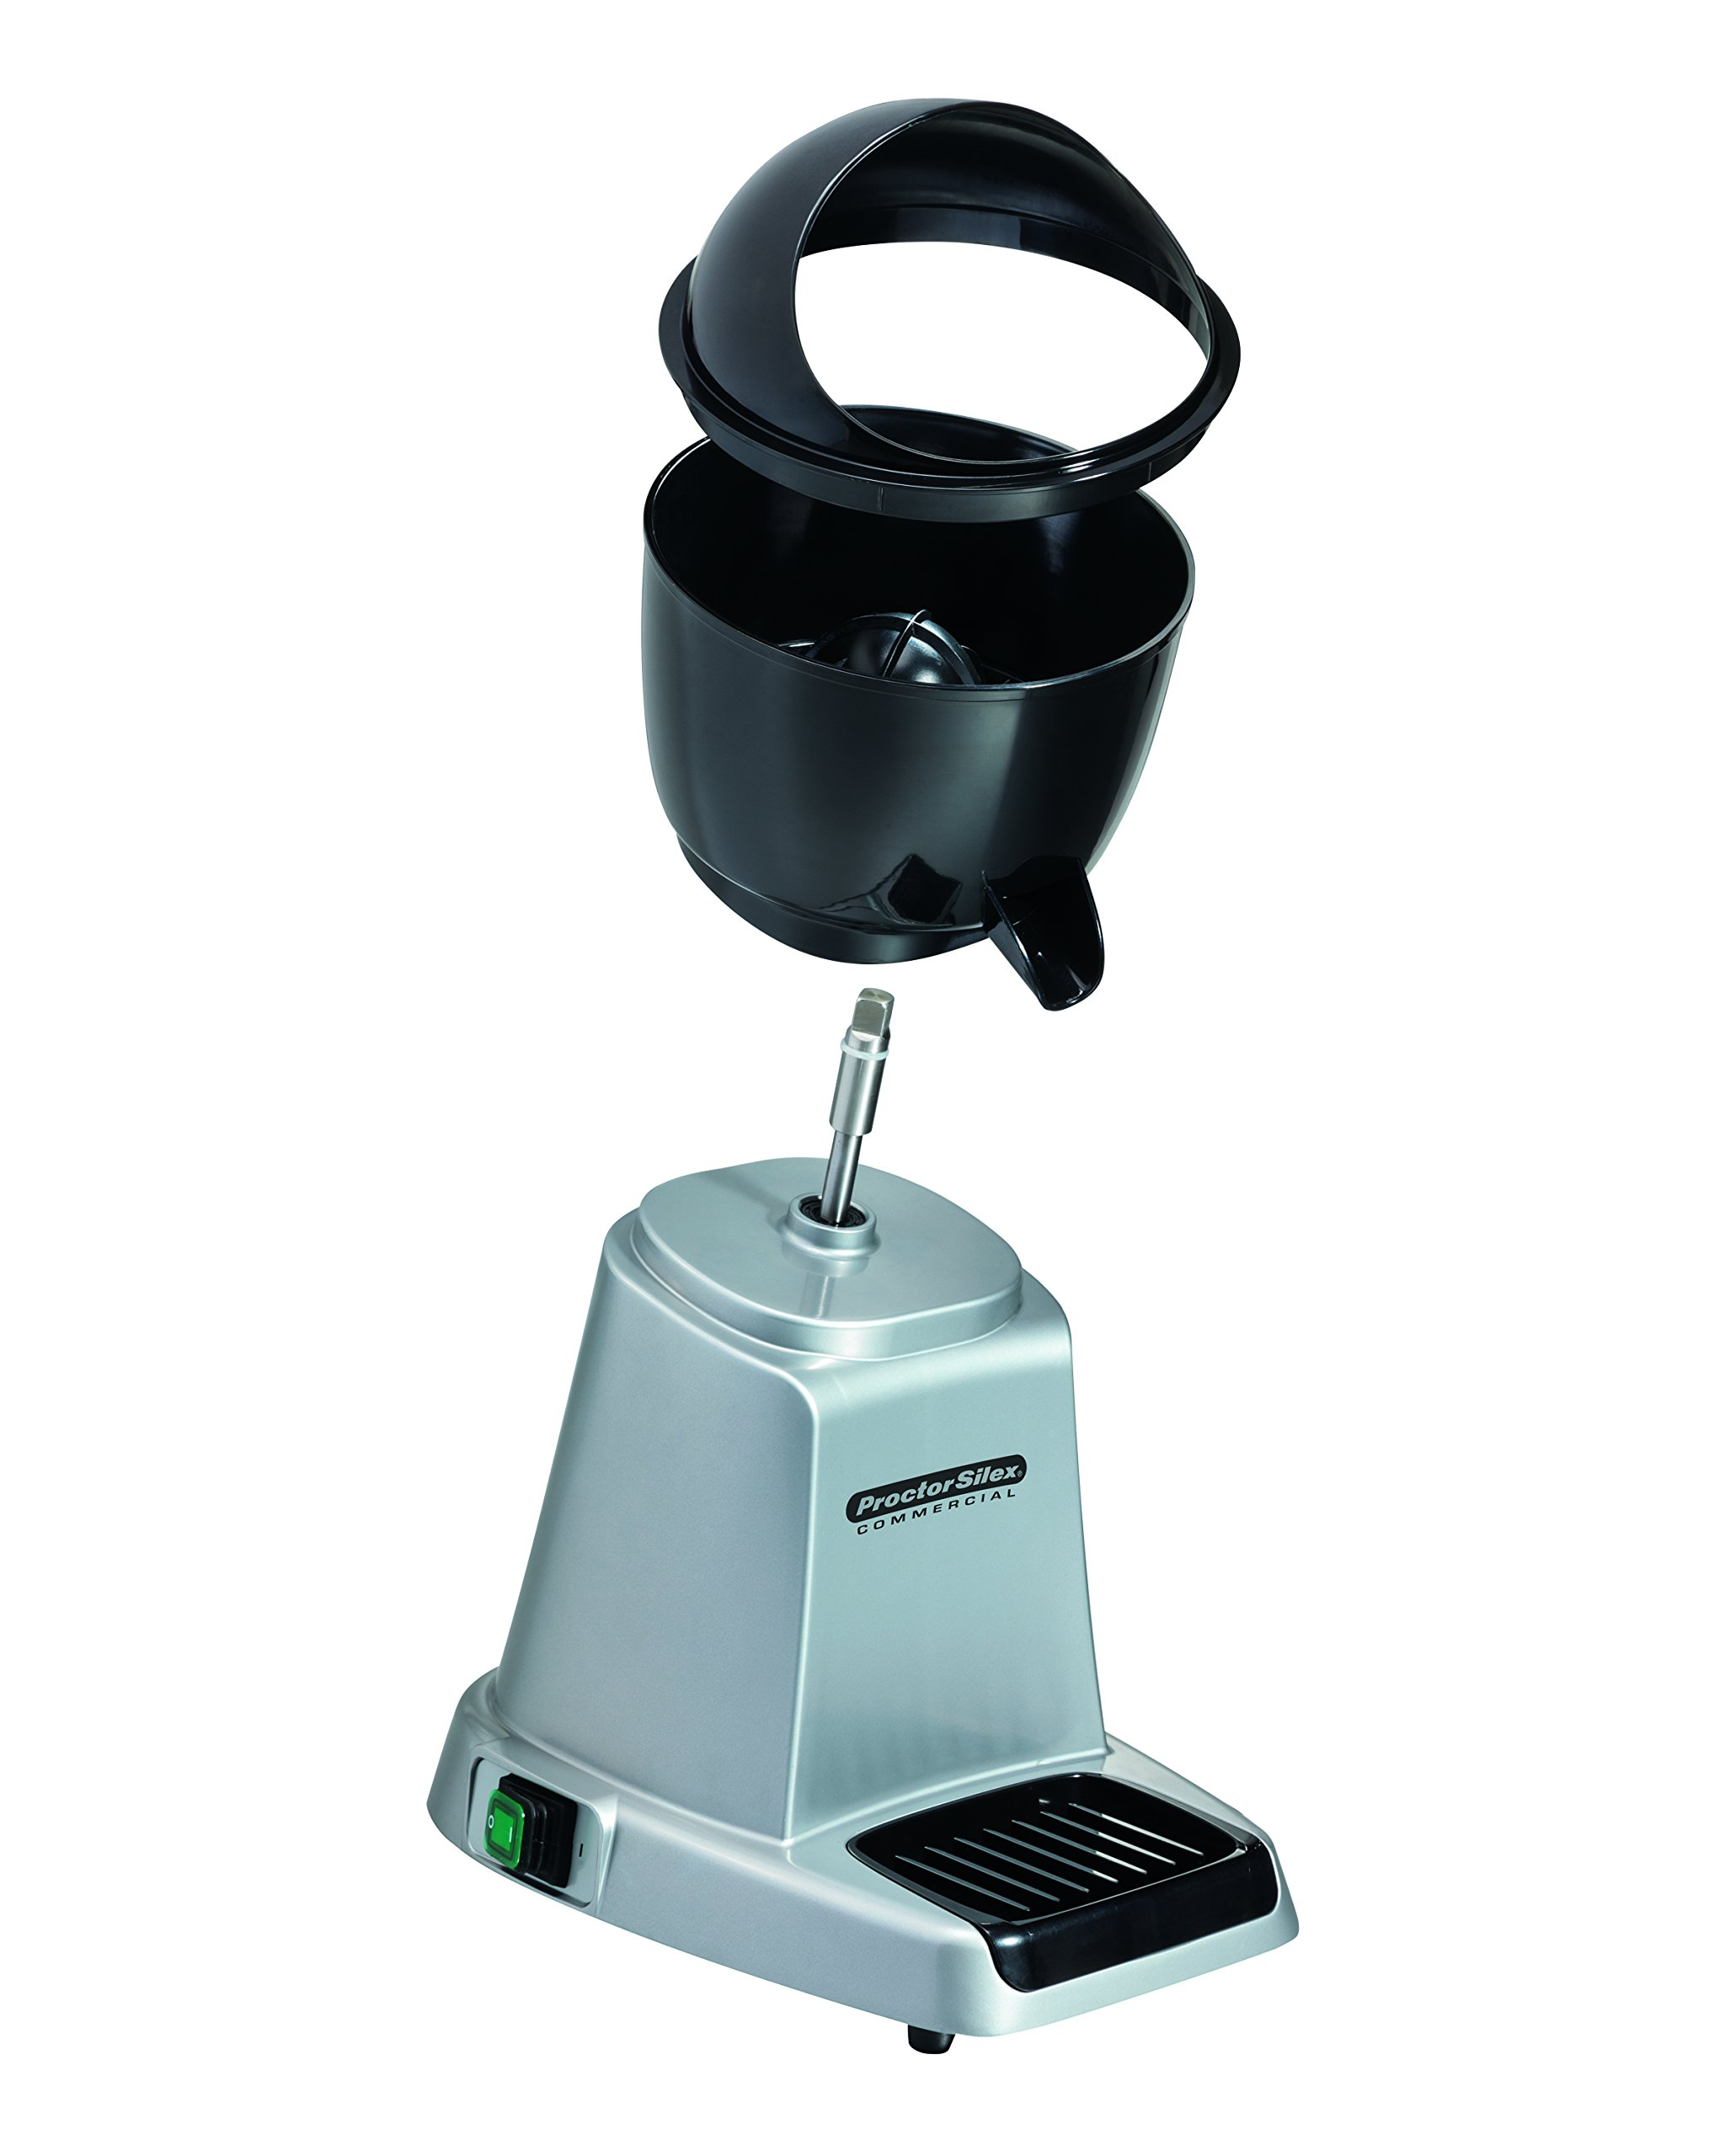 Proctor Silex Commercial 66900 Electric Citrus Juicer, 3 Reamer Sizes for Oranges, Lemons, Limes and Grapefruits, Removable Bowl, Strainer, Splashguard, Drip Tray, Black/Grey by Hamilton Beach (Image #6)